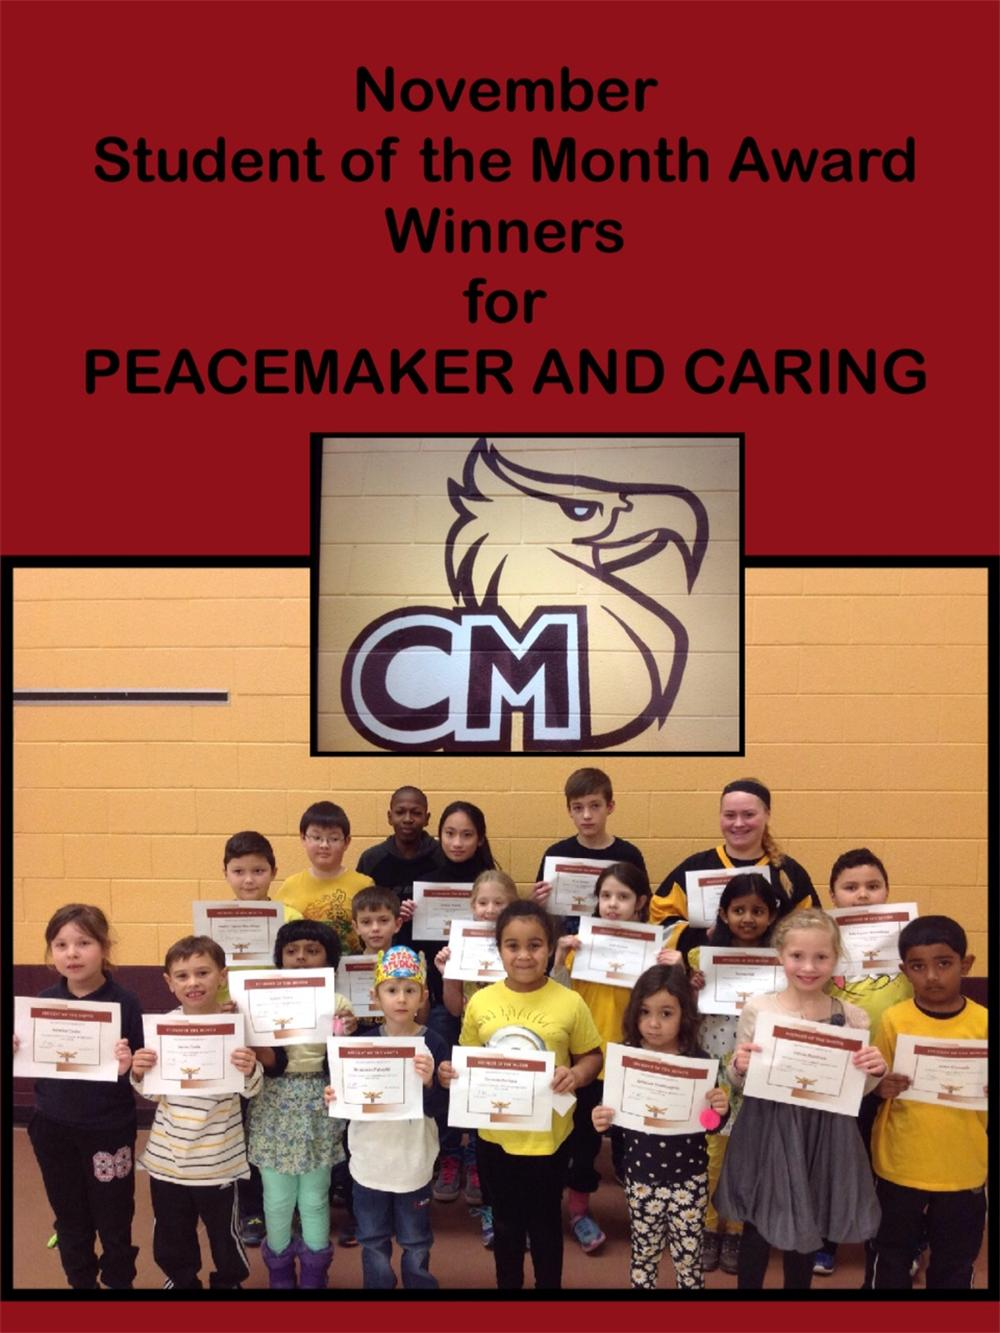 Peacemaker and Caring